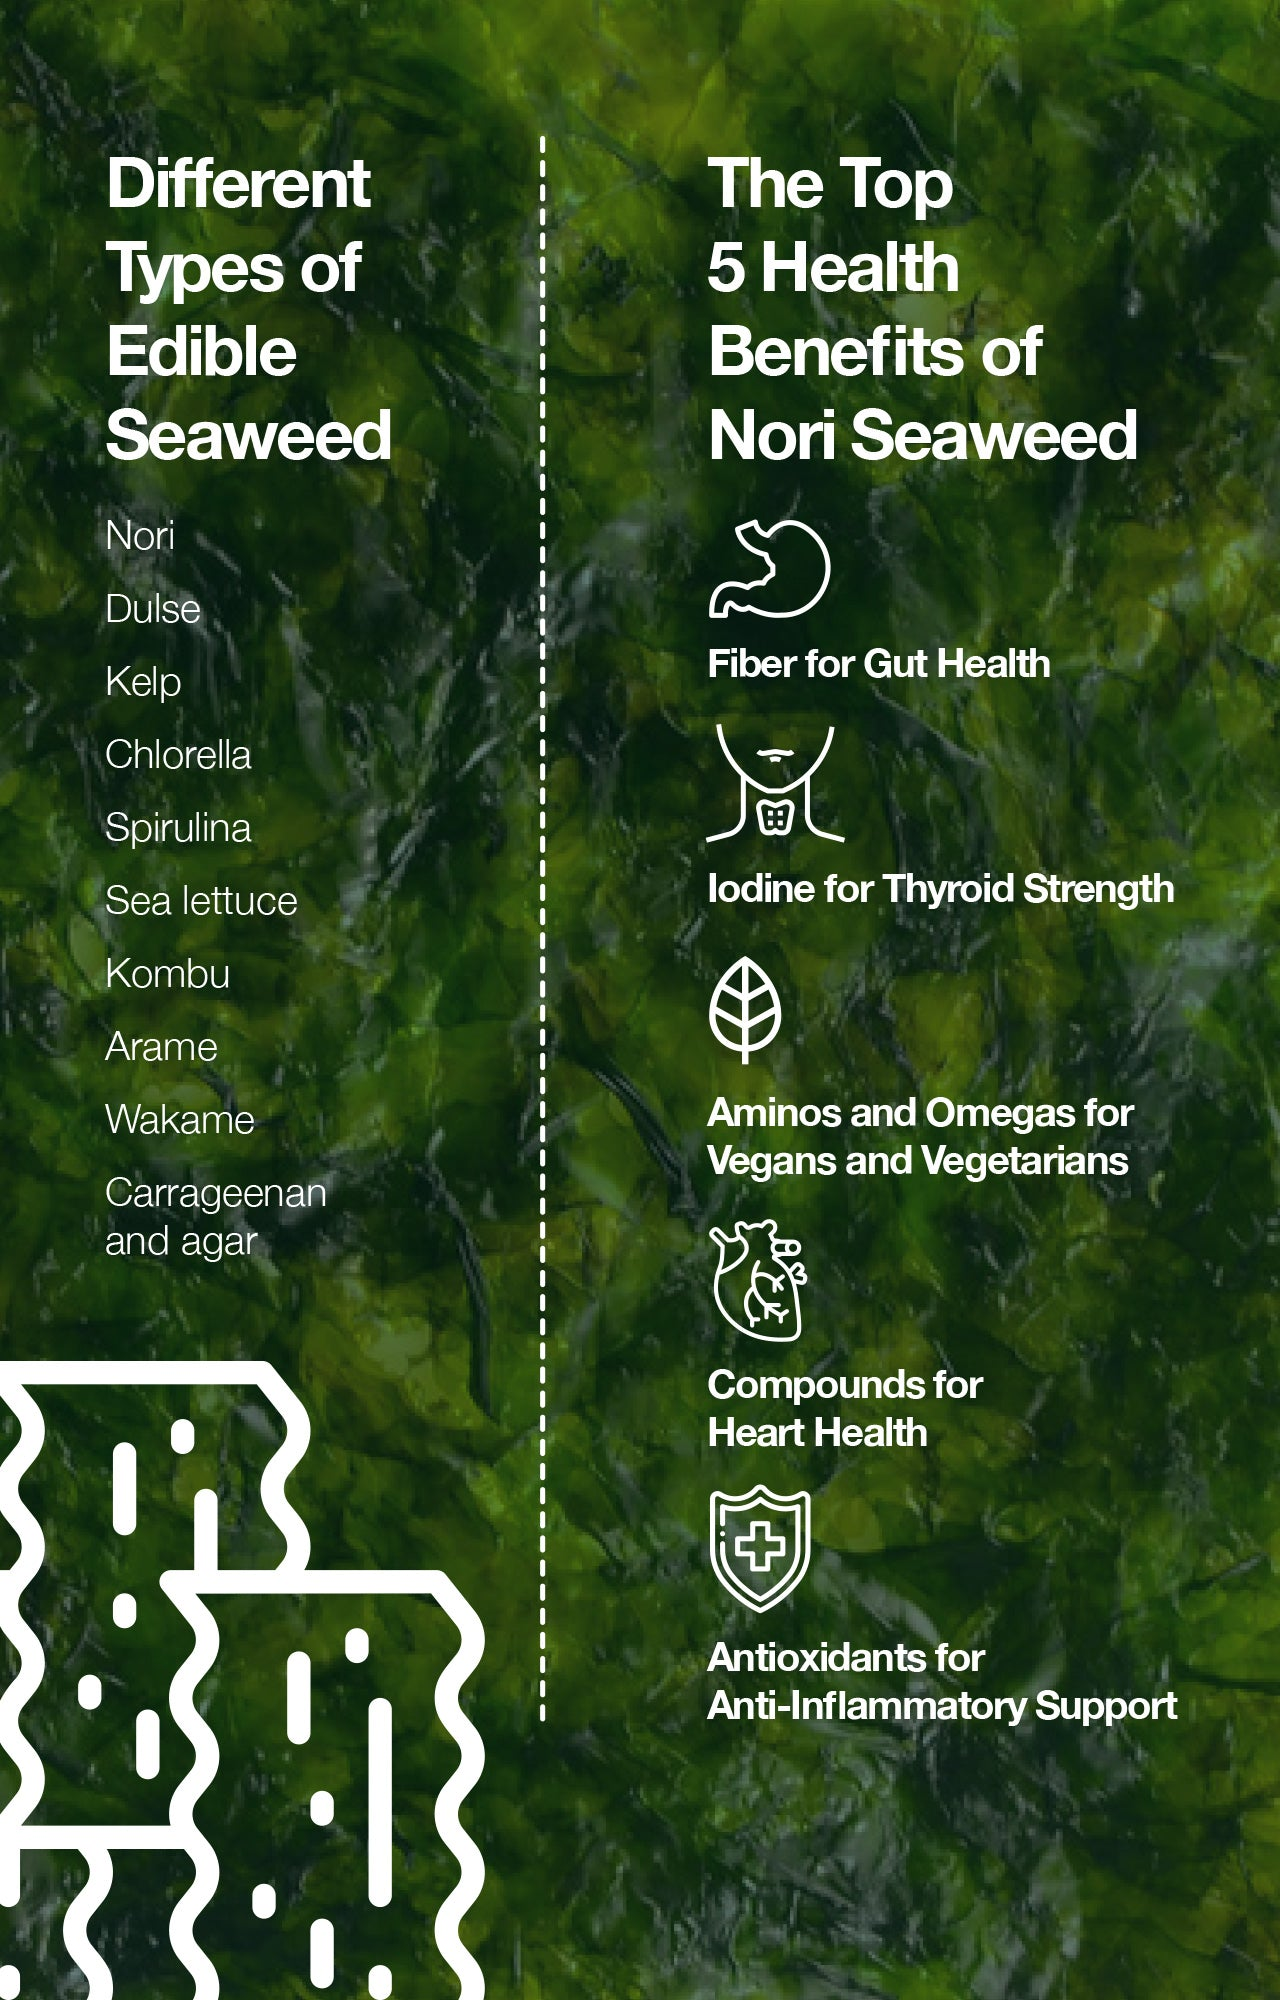 Different Types of Edible Seaweed and Top 5 Health Benefits of Nori Seaweed